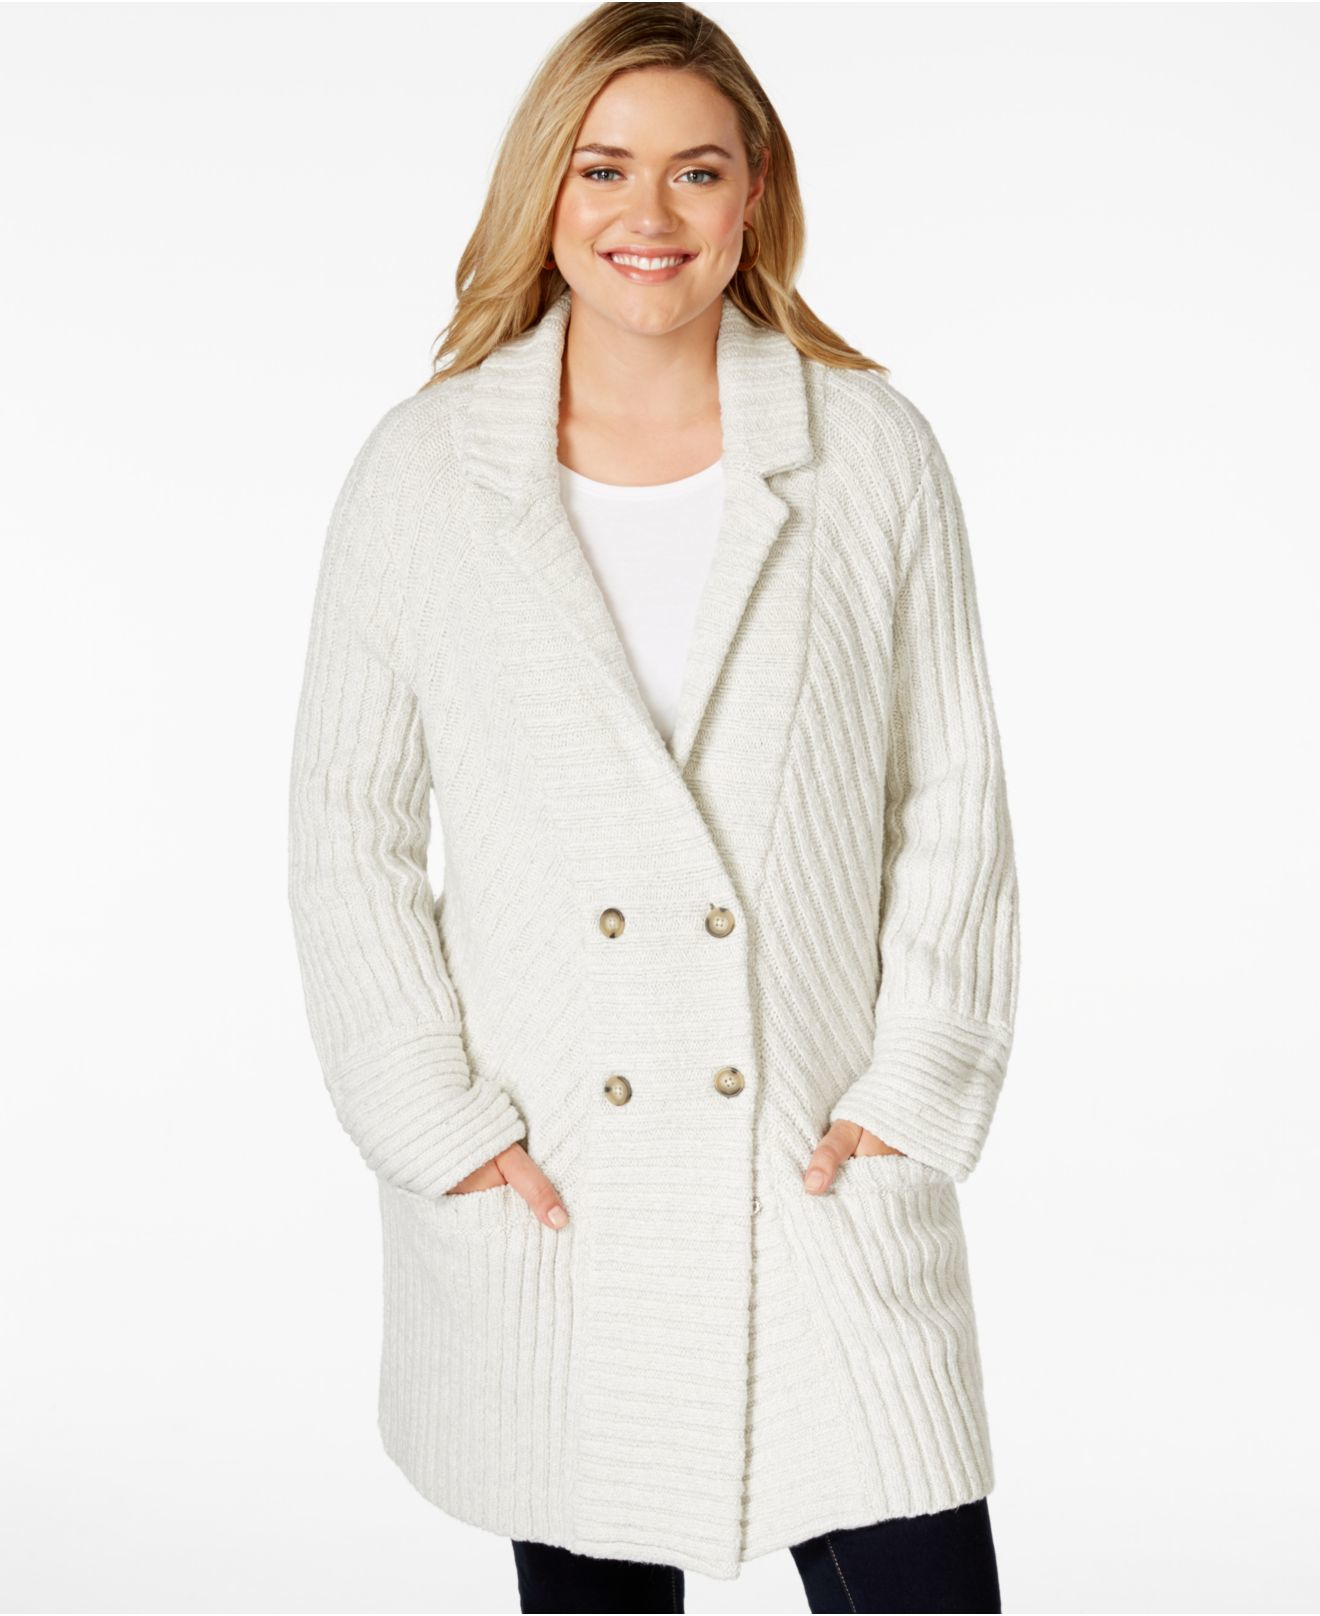 Knitting Patterns For Plus Size Sweaters : Lucky brand Plus Size Rib-knit Sweater Coat in Natural Lyst